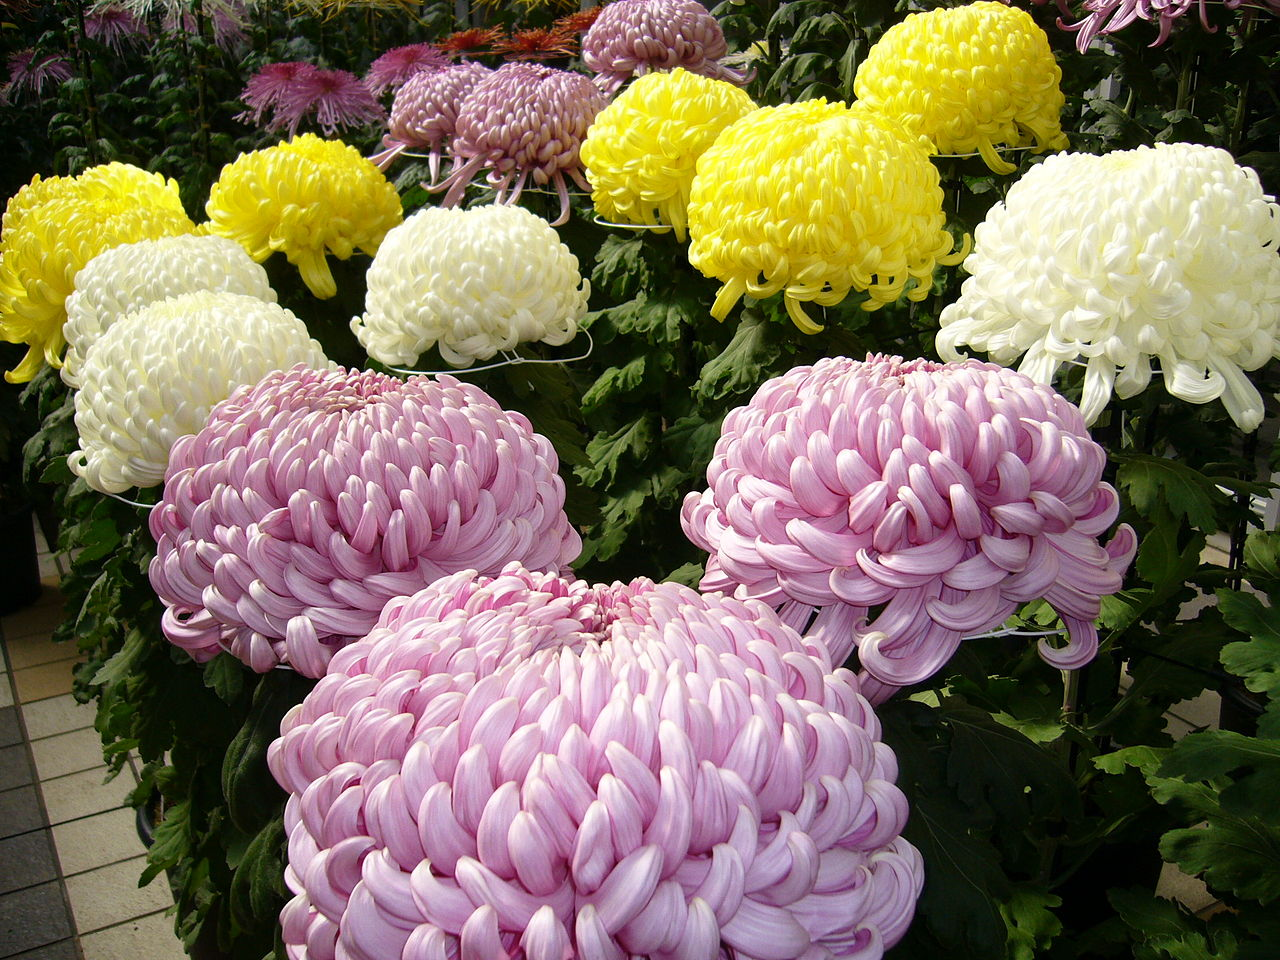 Chrysanthemum: National Flower of Japan